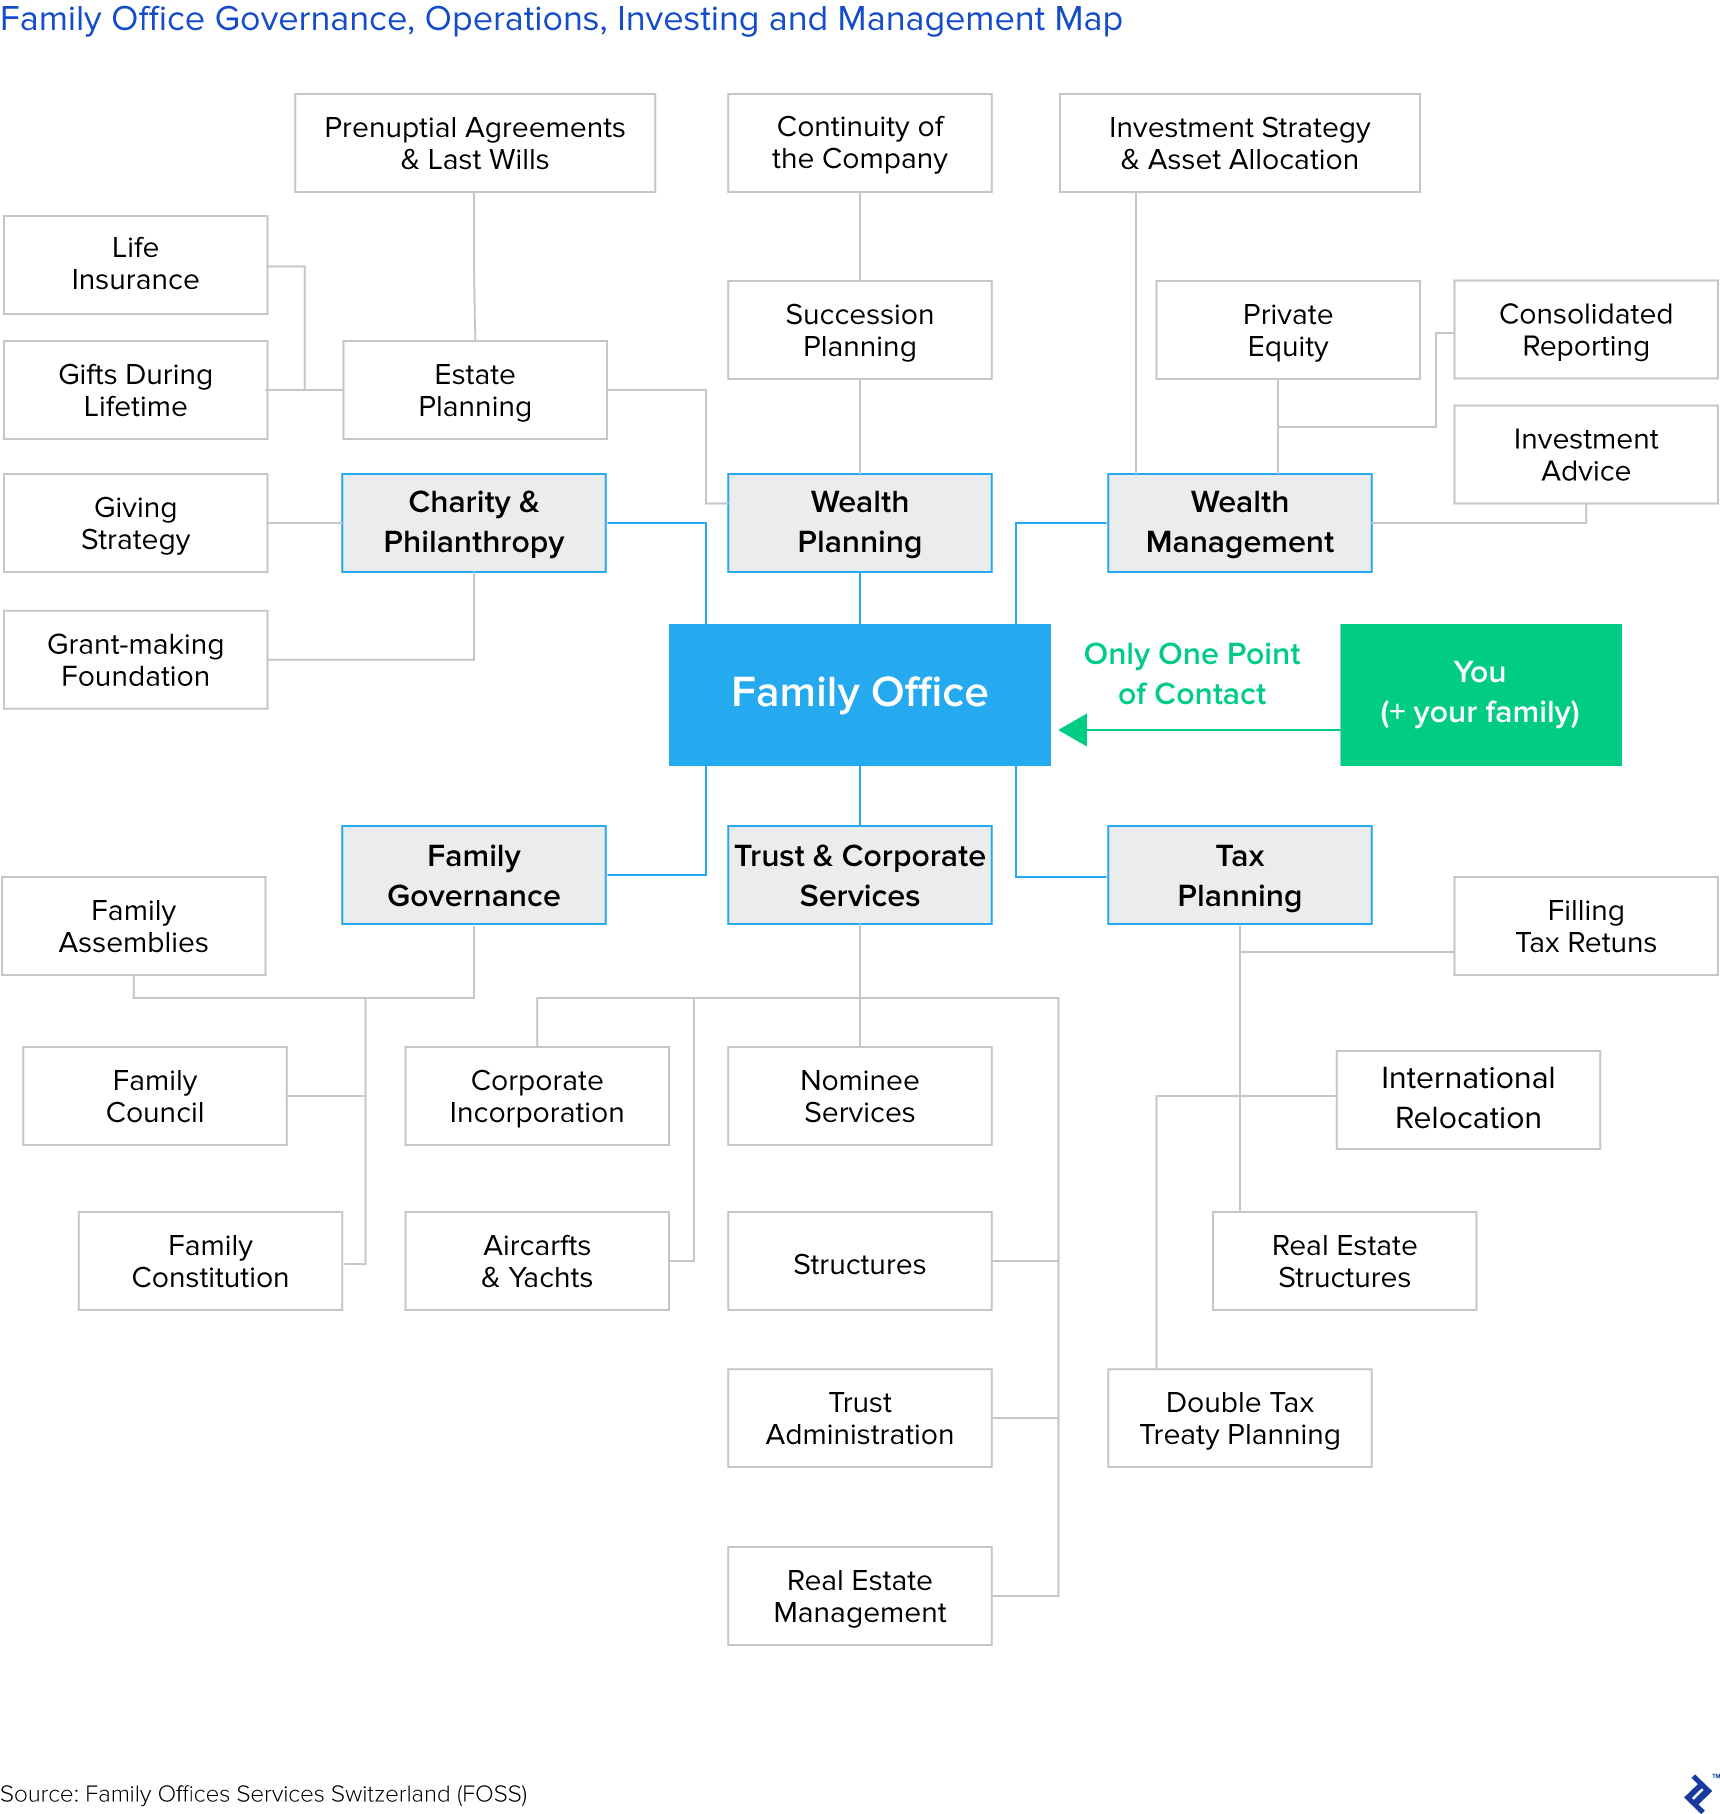 diagram mapping family office governance, operations, investing, and management